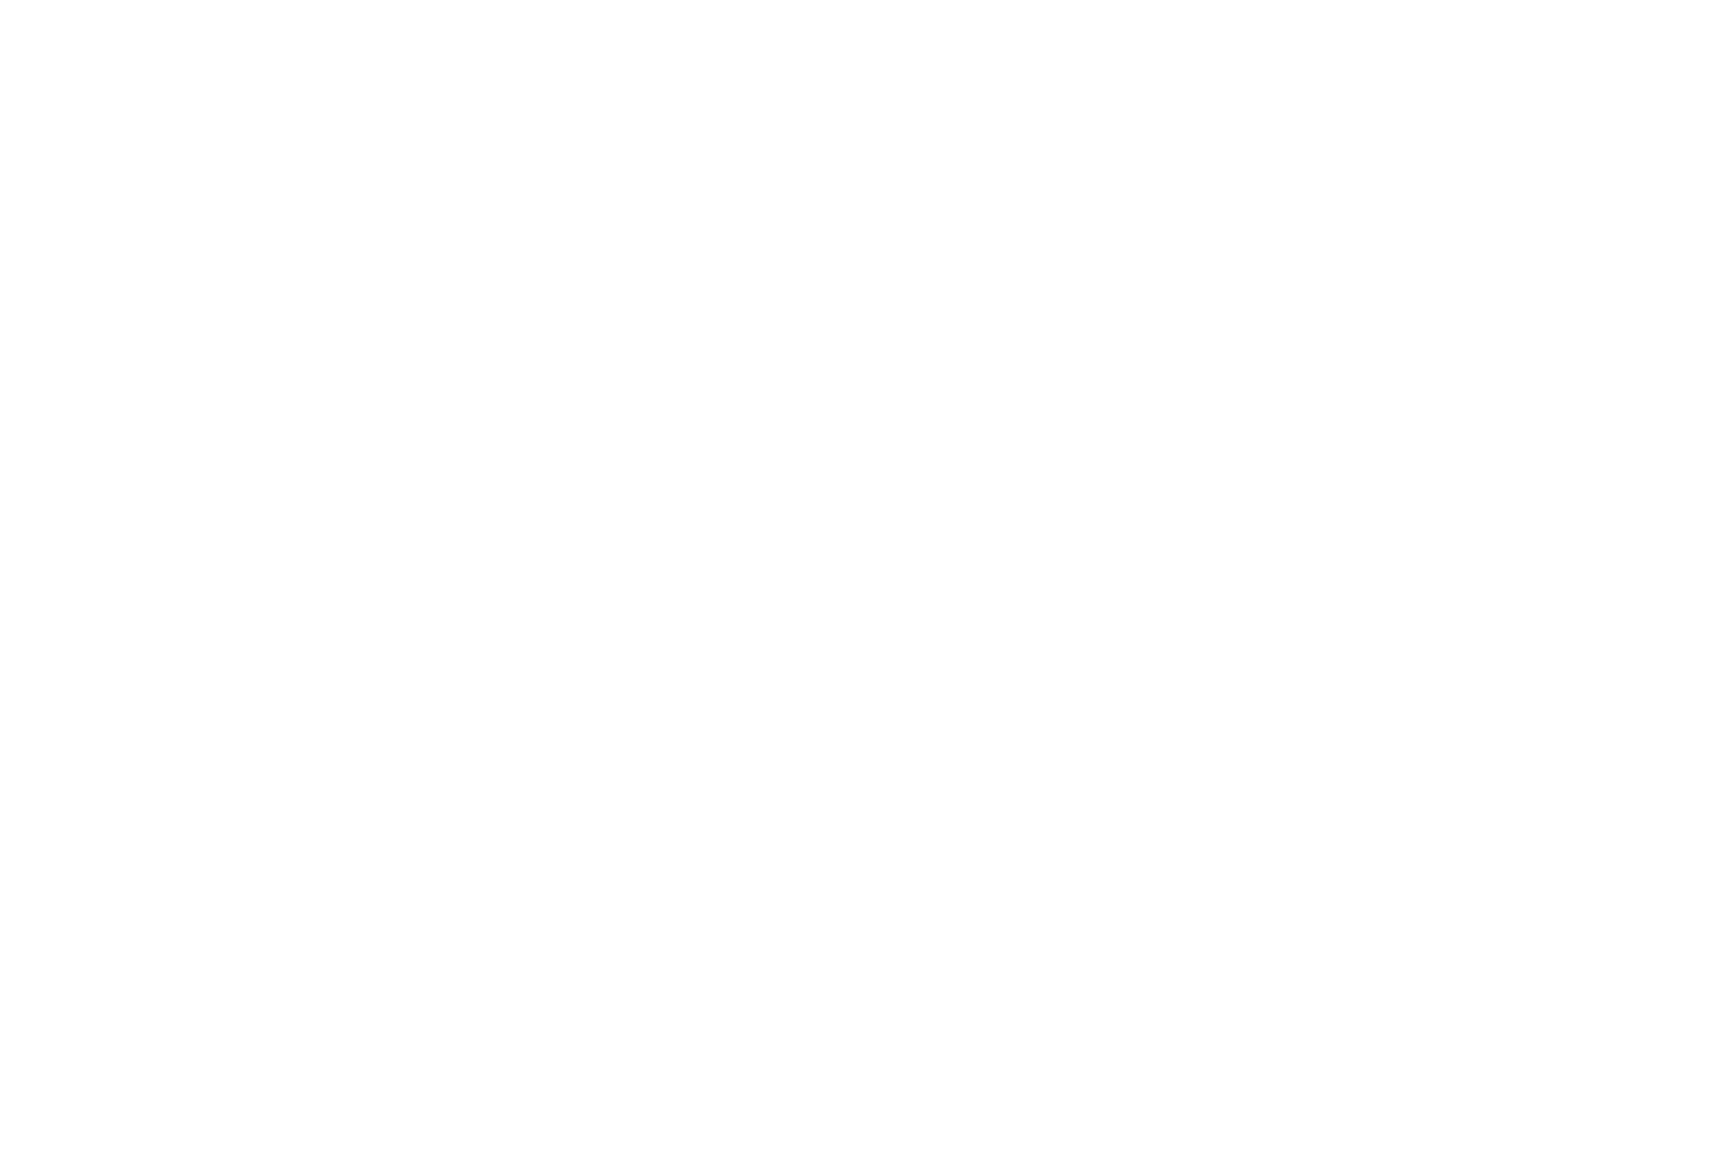 FINALIST - New York Movie Awards - Monthly Festival - 2020